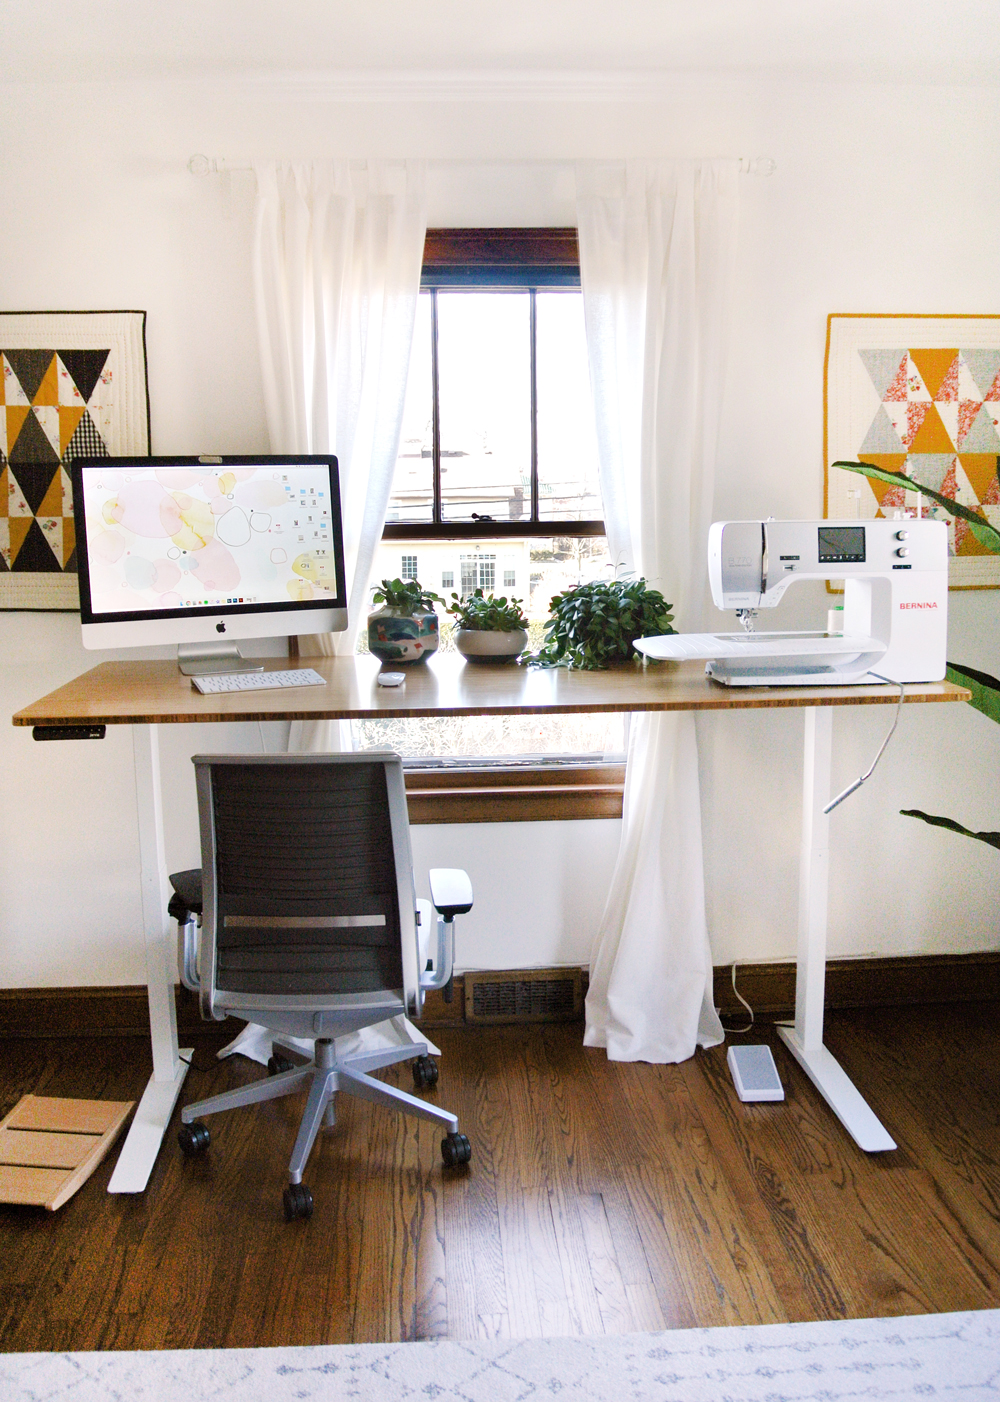 A tour of the Suzy Quilts studio with the New and Improved Standing Desk! Standing Desk Sewing Studio by Suzy Quilts https://suzyquilts.com/standing-desk-sewing-studio